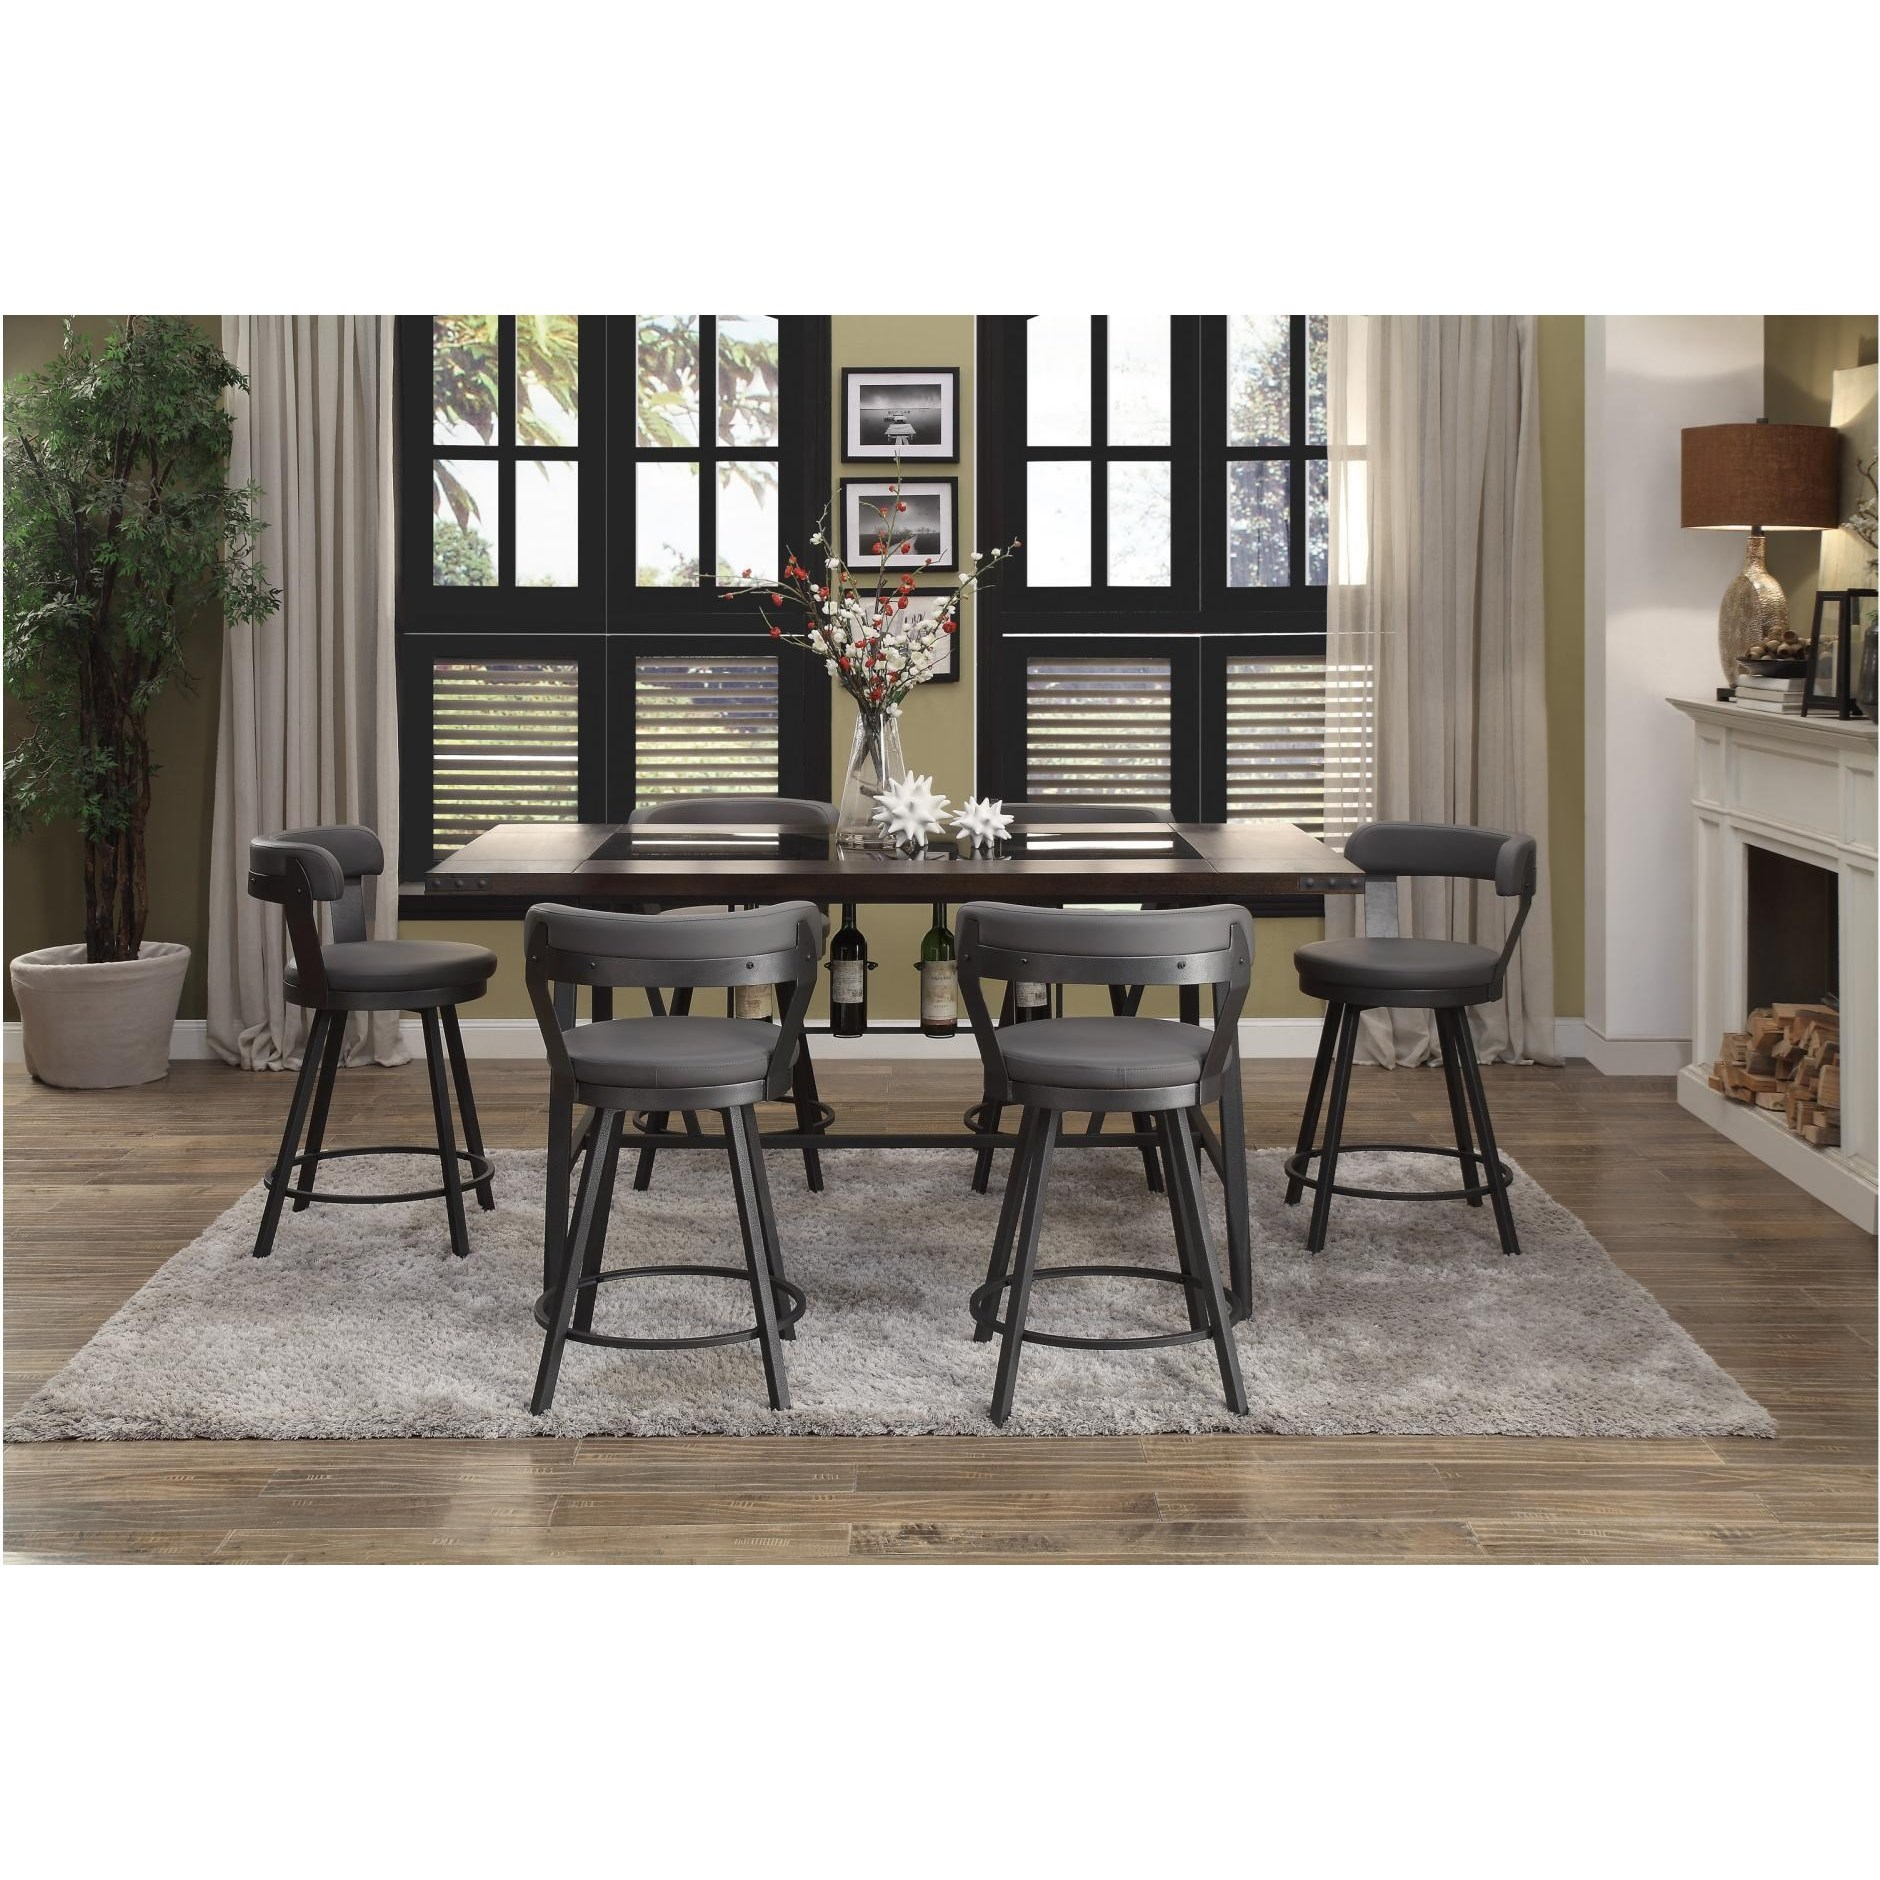 Appert 7 Piece Dining Set by Homelegance at Value City Furniture